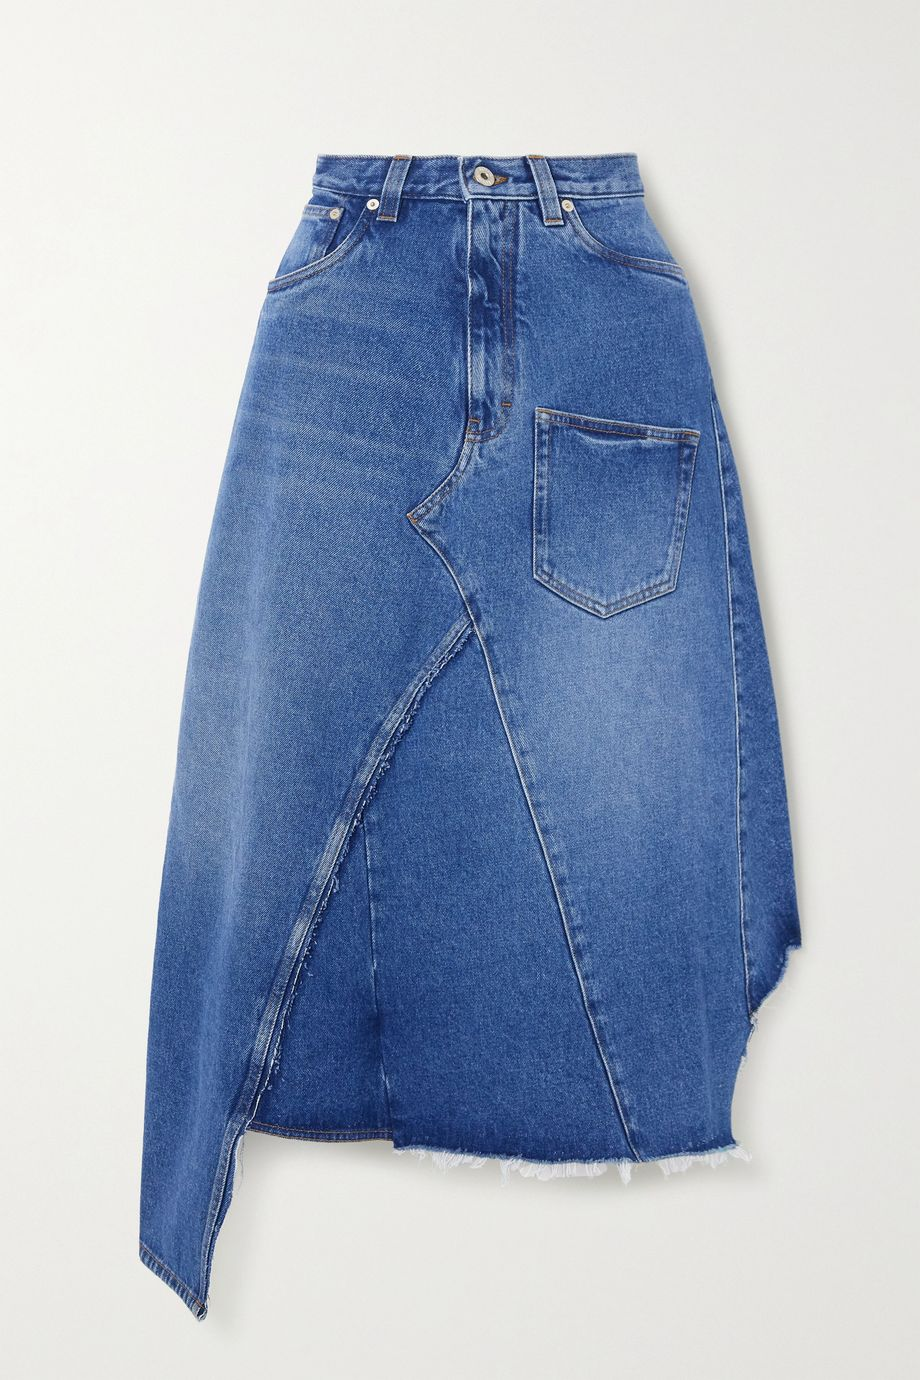 Loewe Asymmetric frayed denim skirt